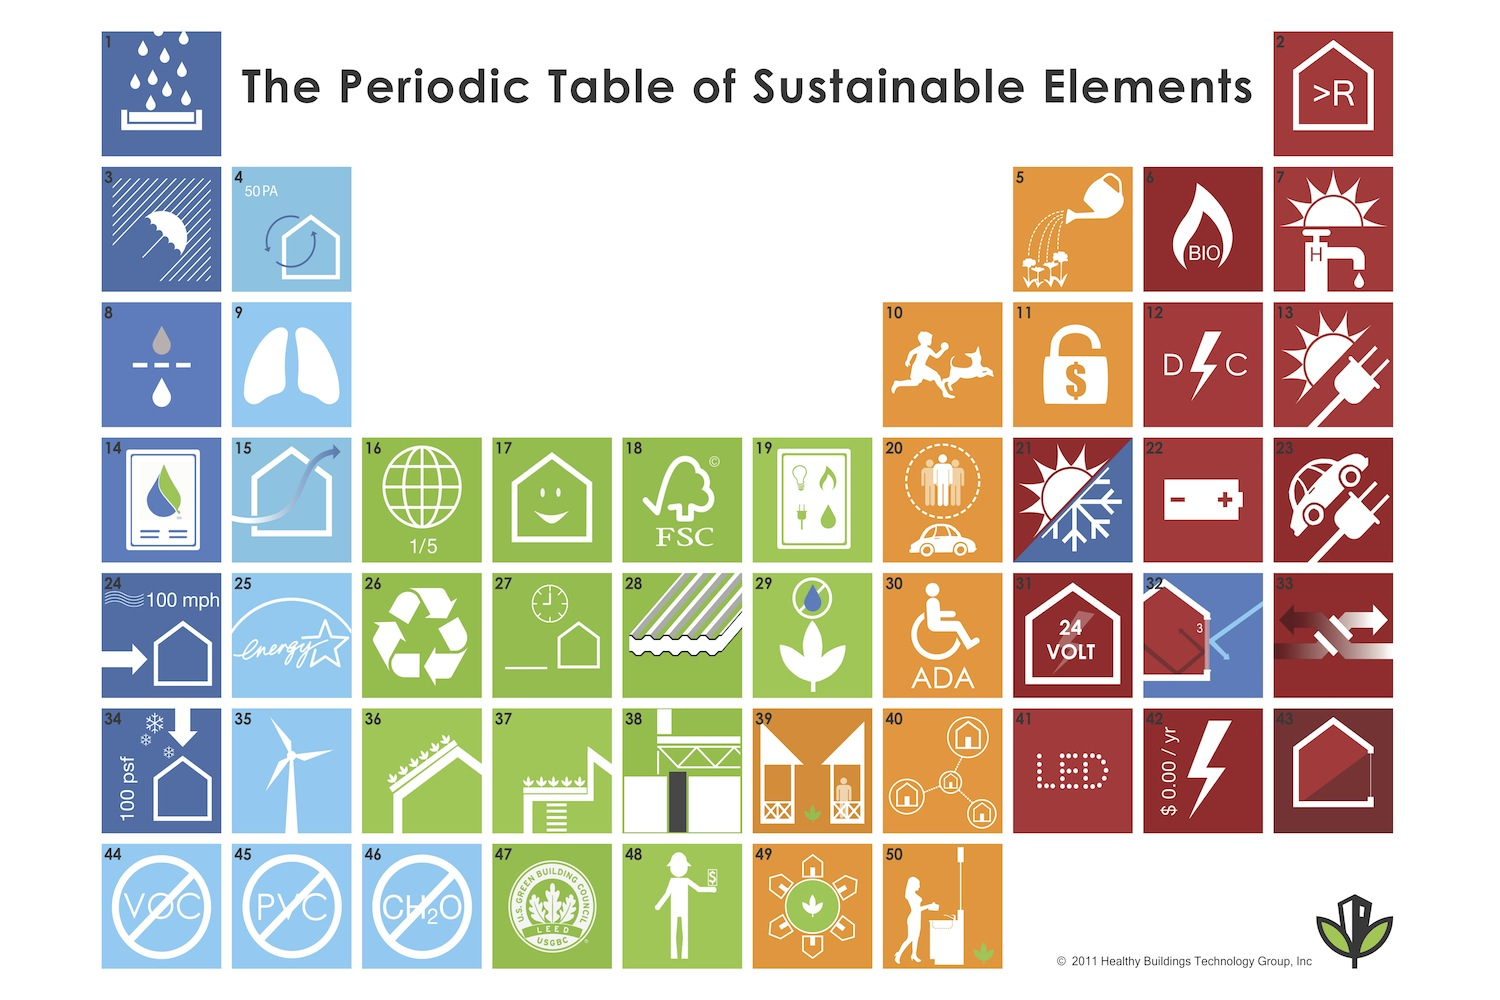 Sustainable Periodic Table 2015_4_23_FINAL